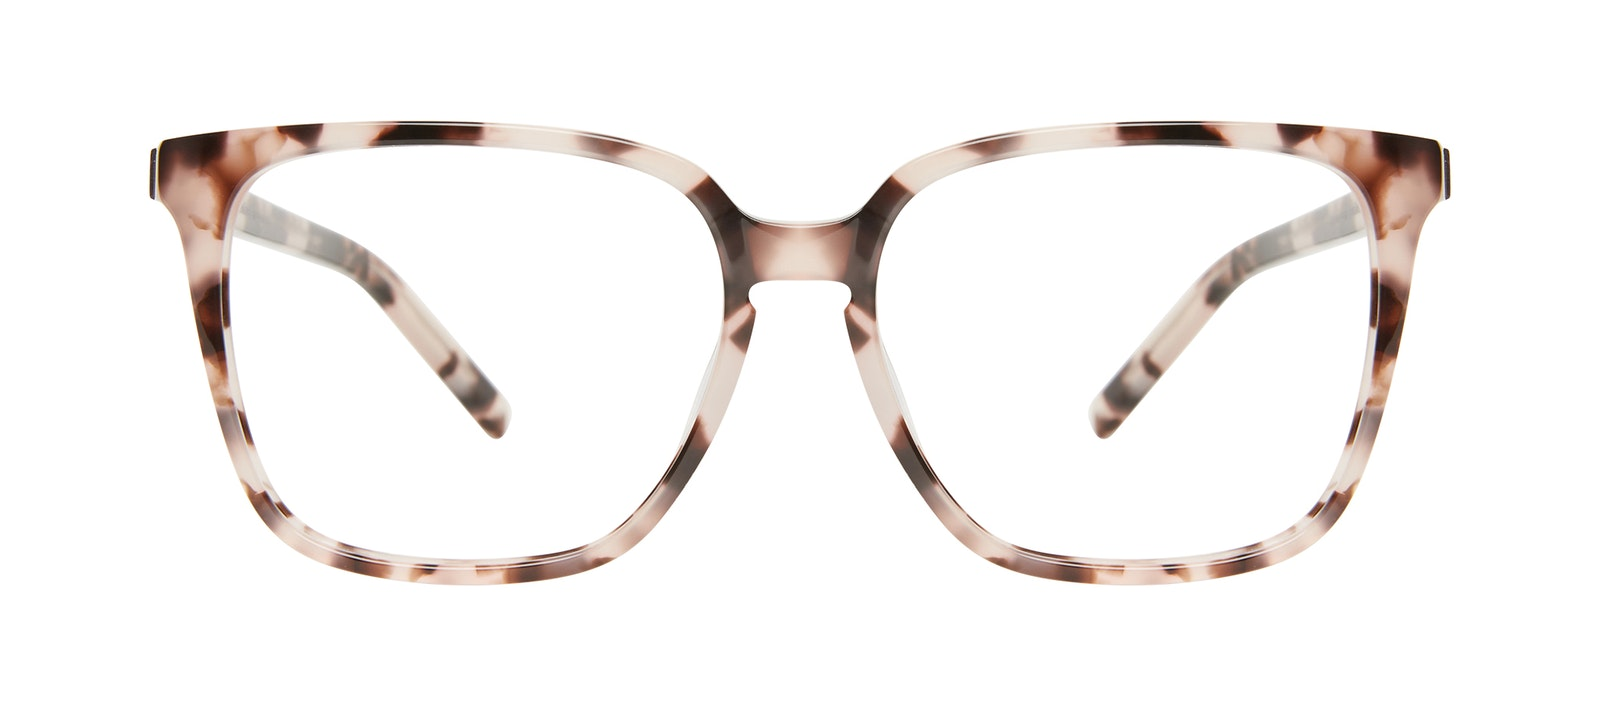 Affordable Fashion Glasses Square Eyeglasses Women Runway L Marbled Pink Front